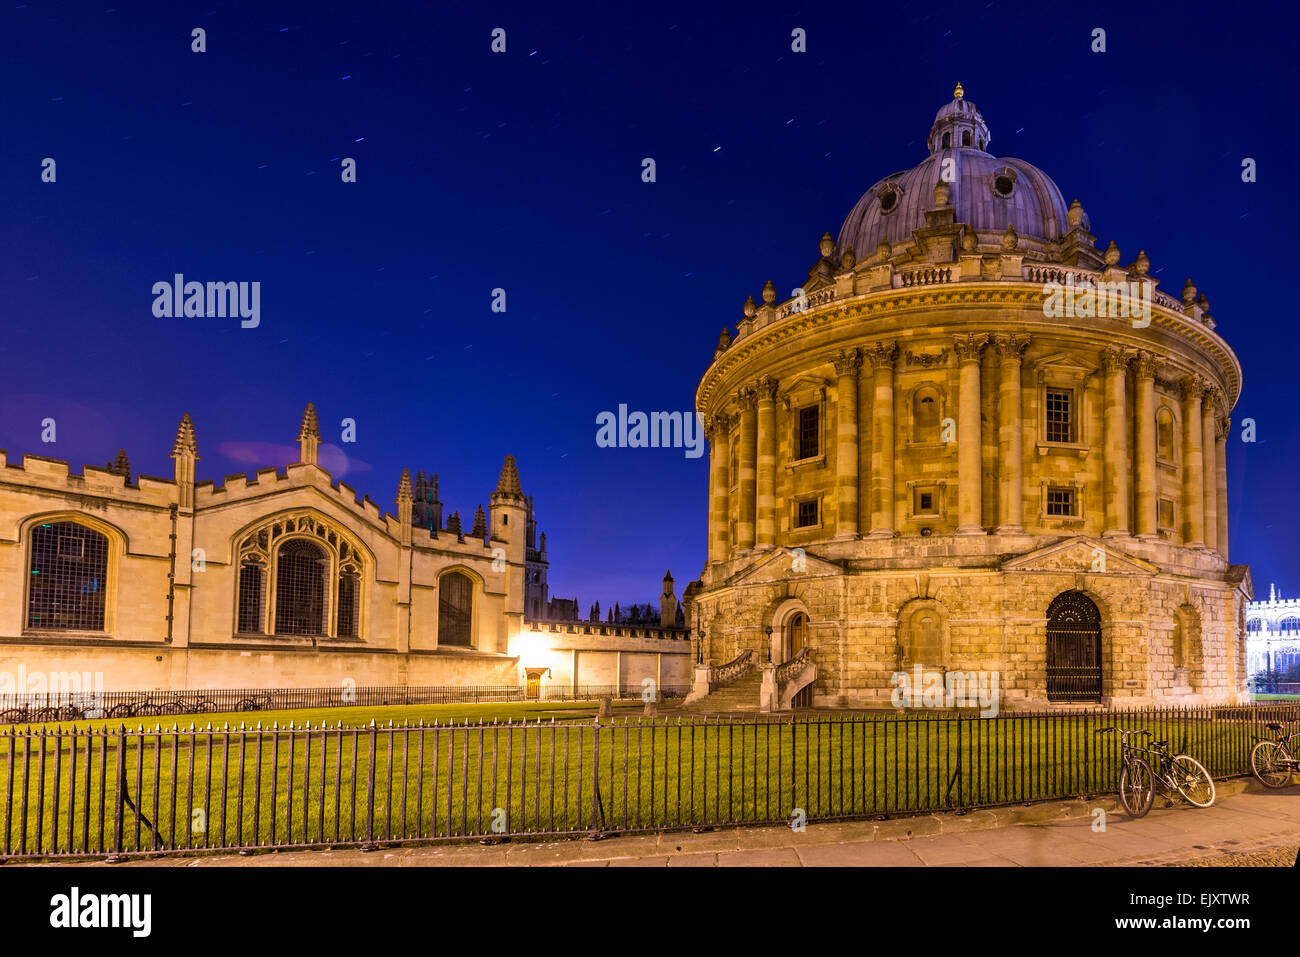 The Radcliffe Camera is a reading room of the Bodleian Library, Oxford University. Seen here at night with All Souls - Stock Image